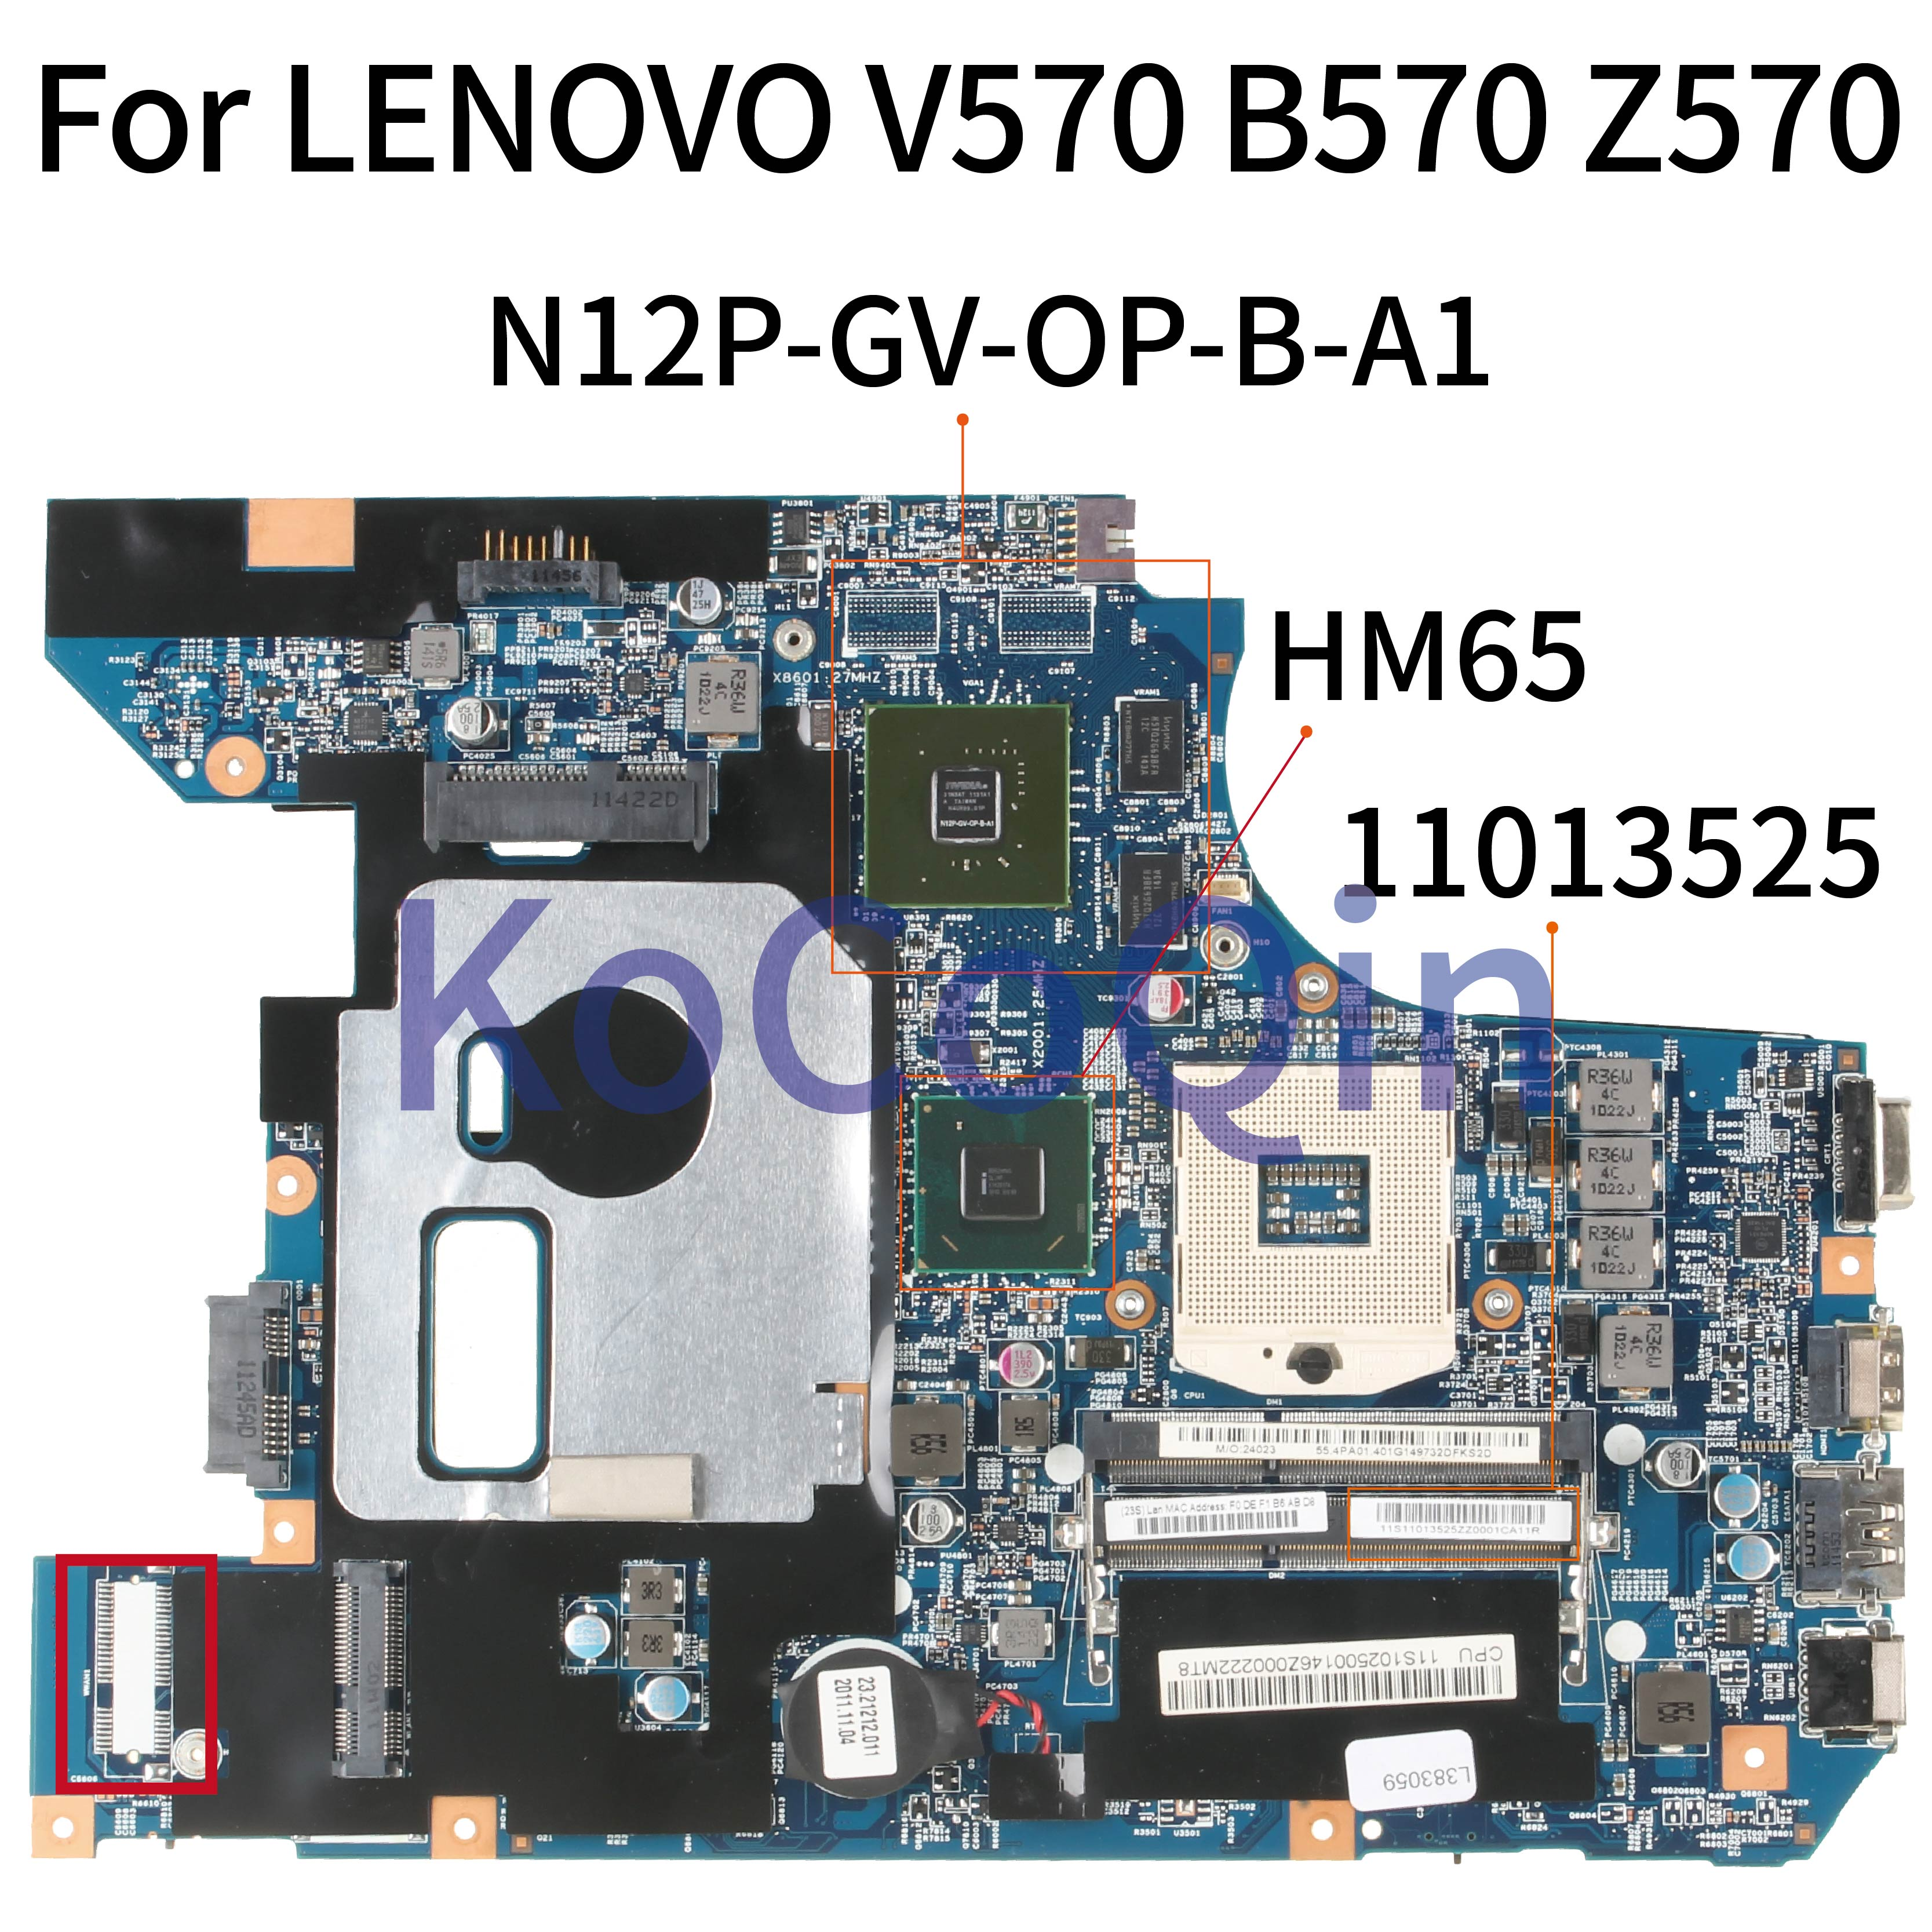 KoCoQin Laptop <font><b>motherboard</b></font> For <font><b>LENOVO</b></font> <font><b>V570</b></font> B570 Z570 HM65 N12P-GV-OP-B-A1 Mainboard 10290-2 48.4PA01.021 LZ57 11013525 image